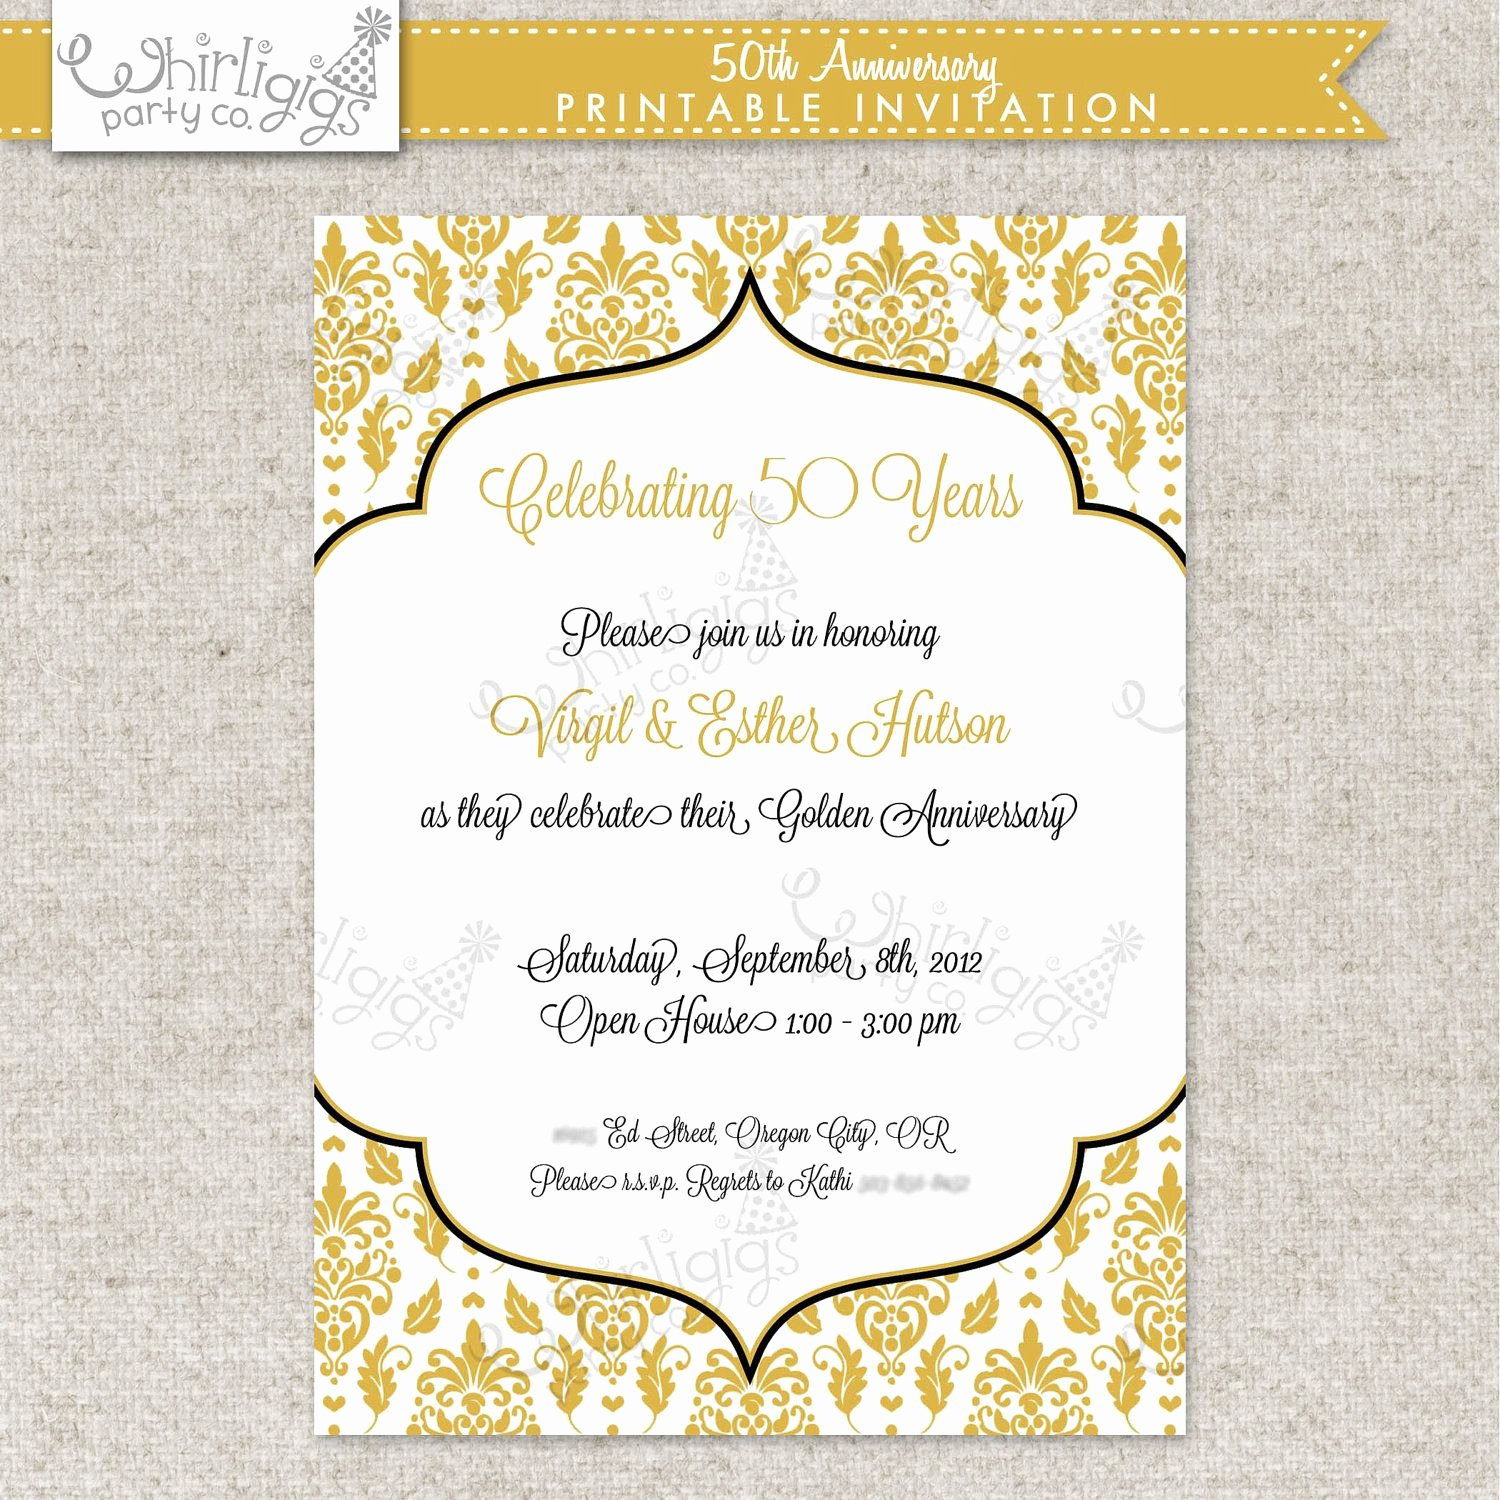 Free 50th Anniversary Invitation Templates Unique 50th Anniversary Invitation Golden Anniversary Invitation